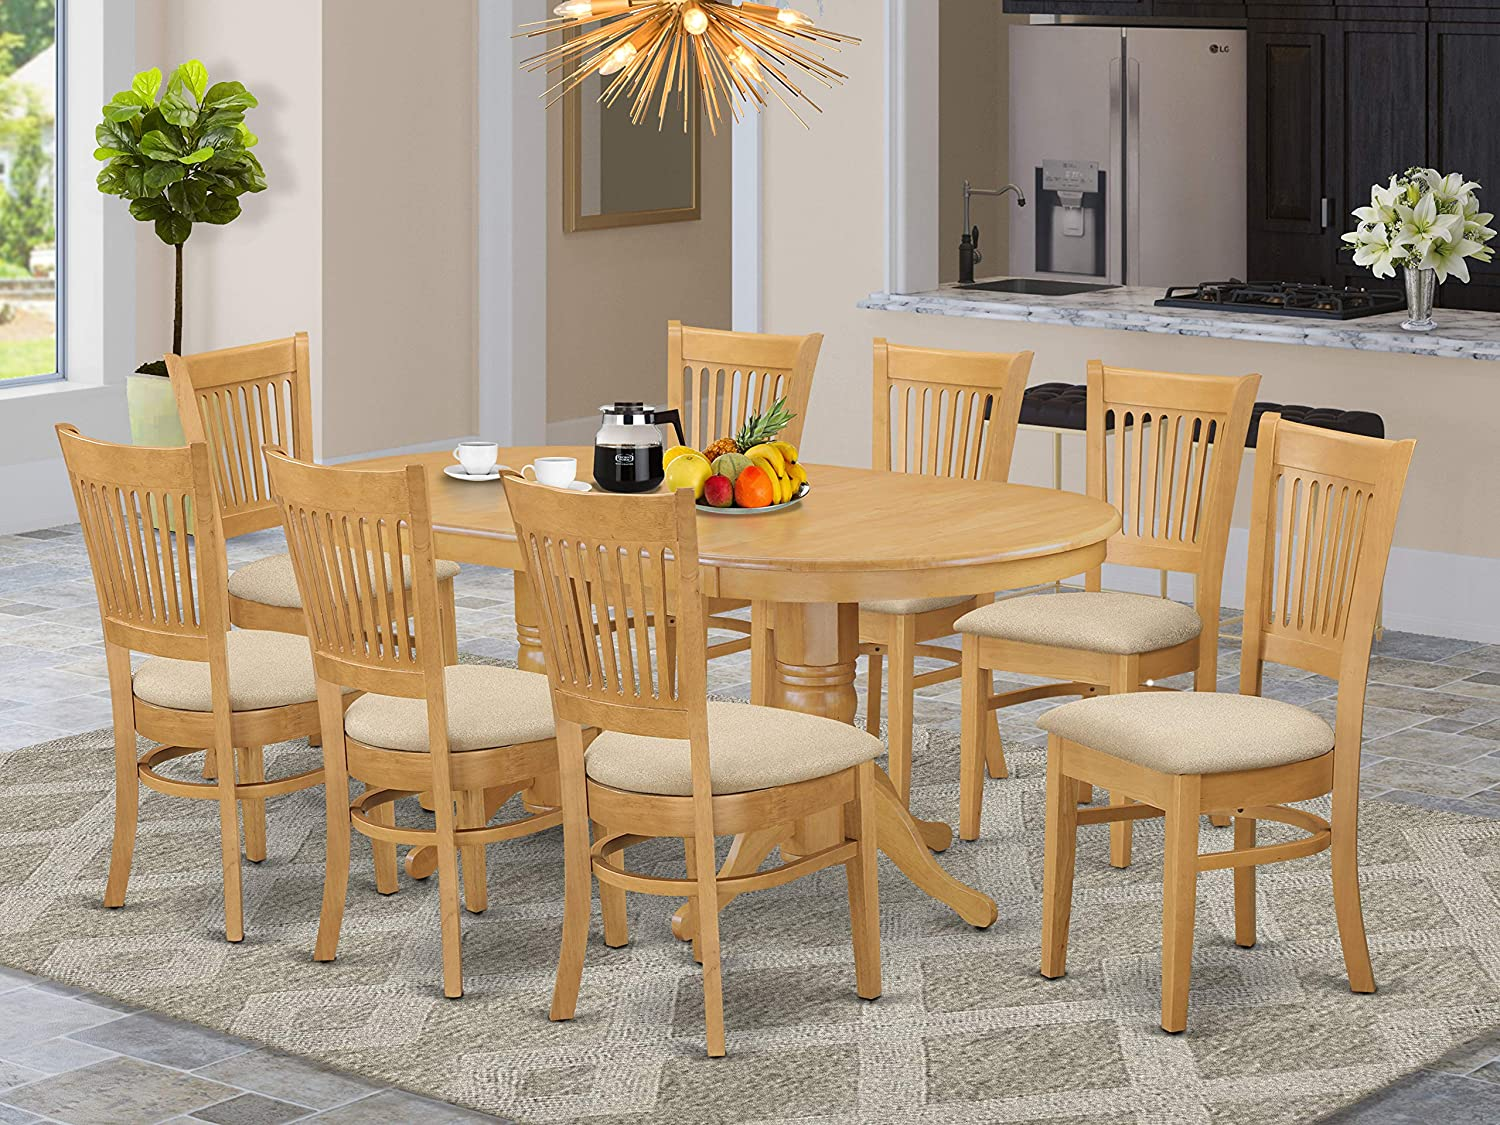 Amazon Com 9 Pc Dining Room Set For 8 Dining Table With Leaf And 8 Kitchen Dining Chairs Furniture Decor